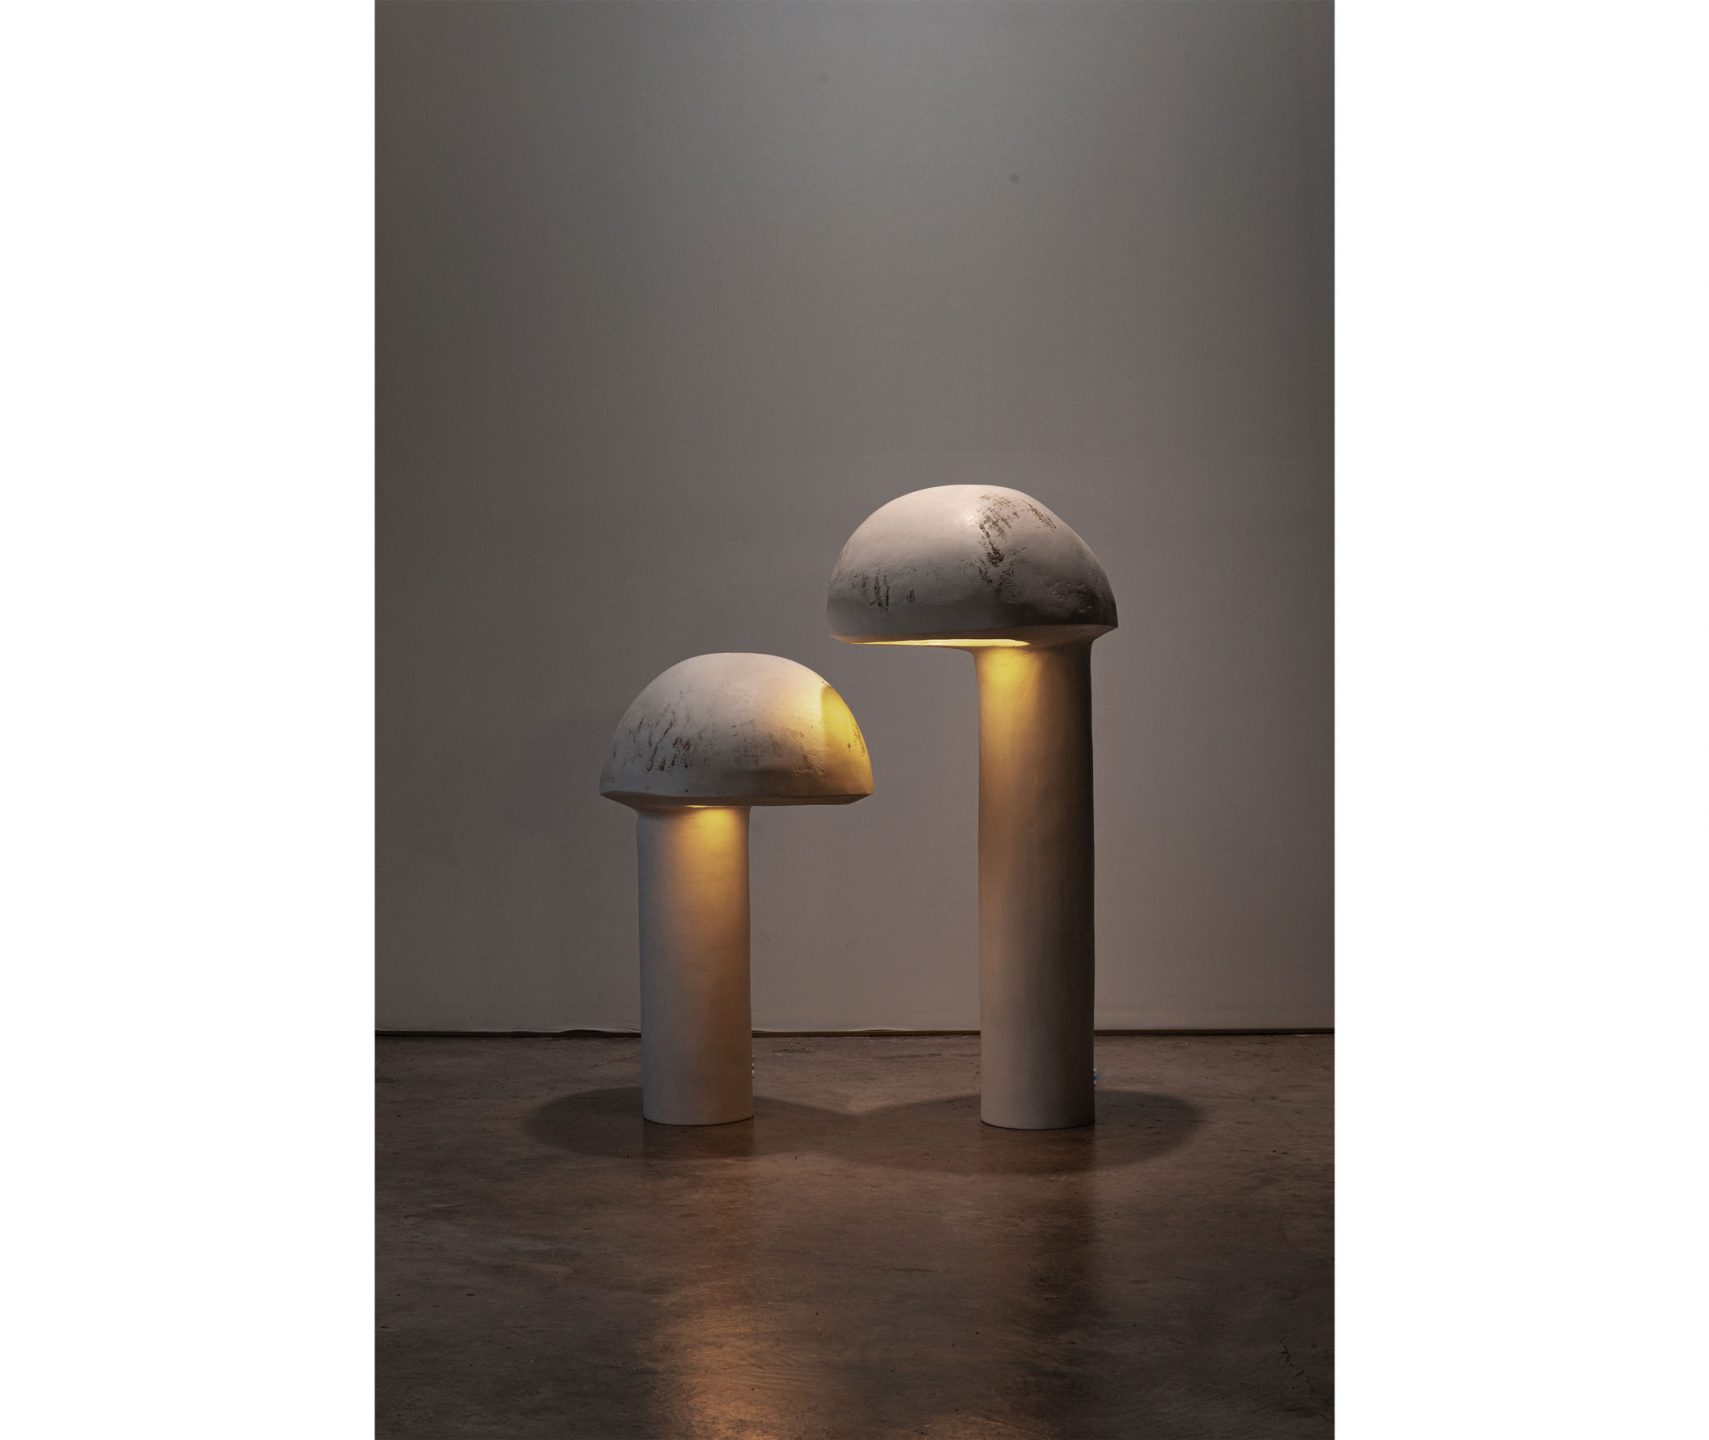 Wexler_Bajo-Tu-Sombra-Under-Your-Shadow-Lamps-2_int_products